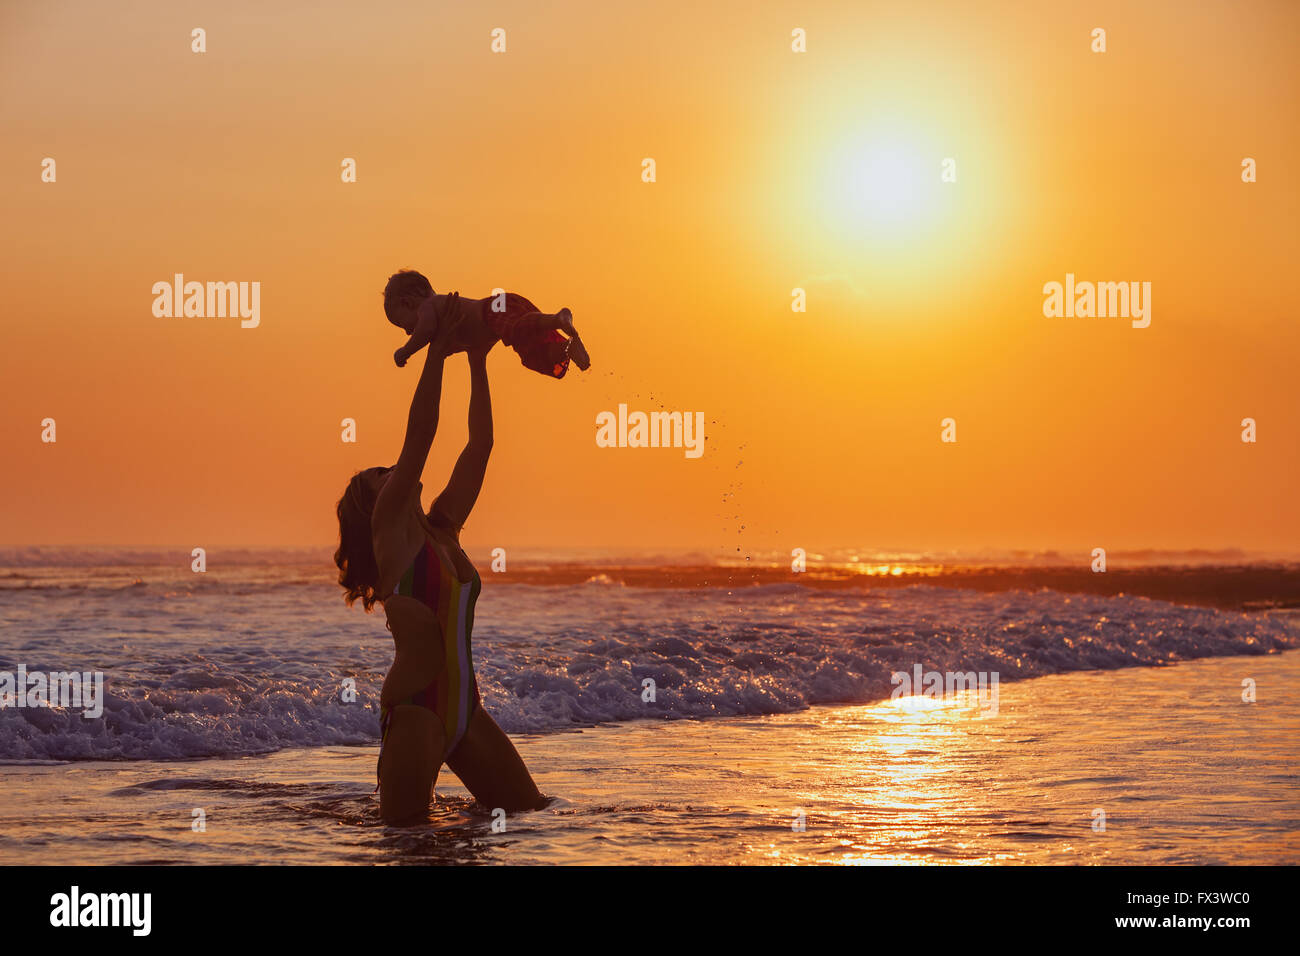 Happy family swimming fun on sea beach - mother tossing up baby son into mid air, catching on sunset sky on sun - Stock Image